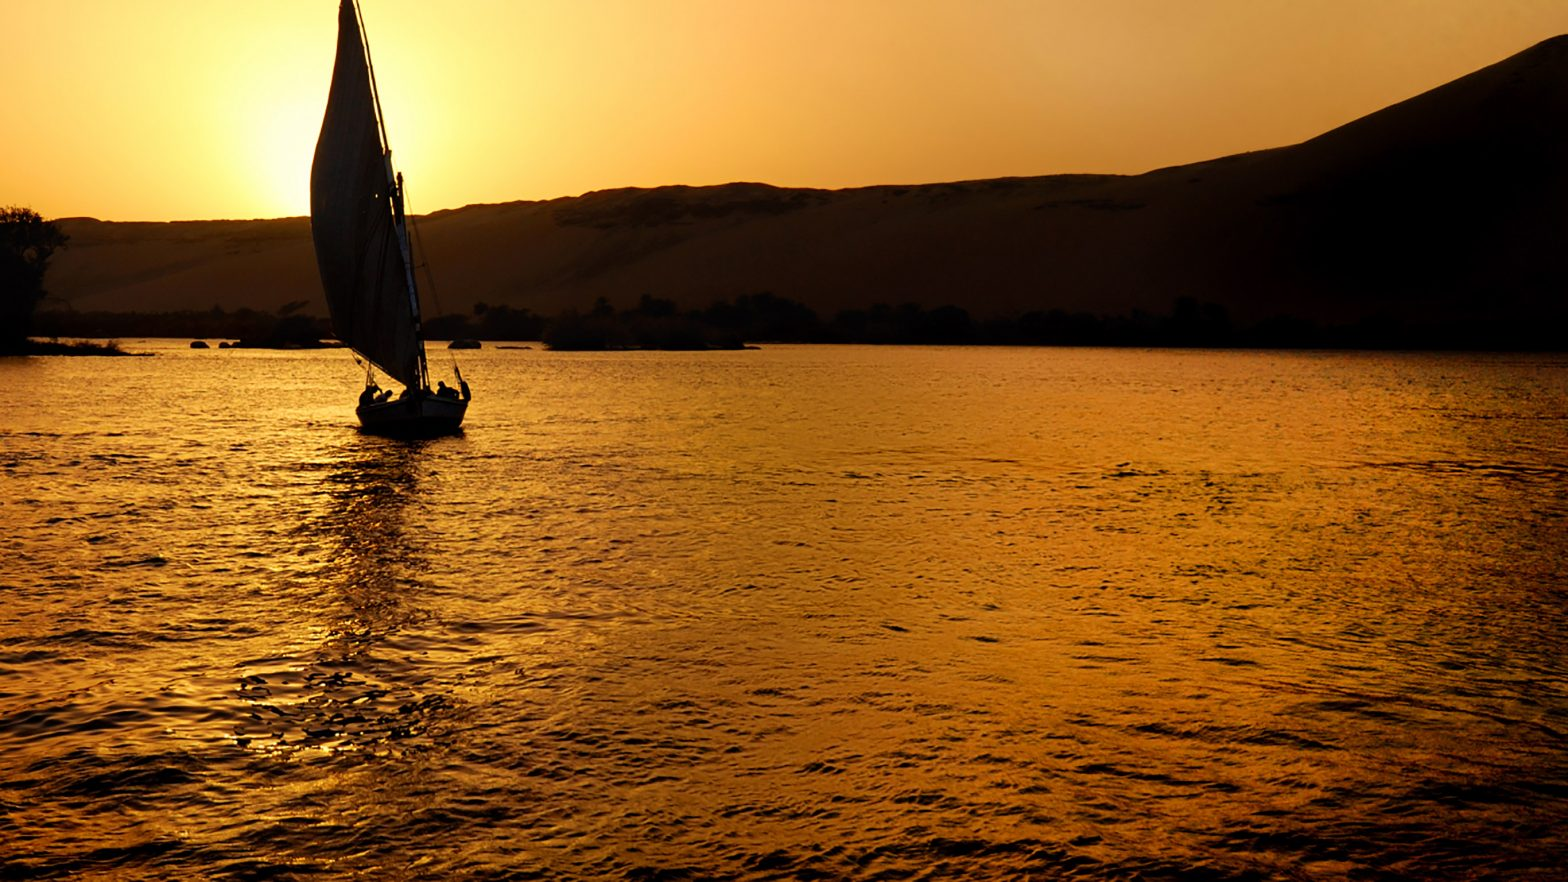 Sailing in Africa: The Best Sailing Experiences